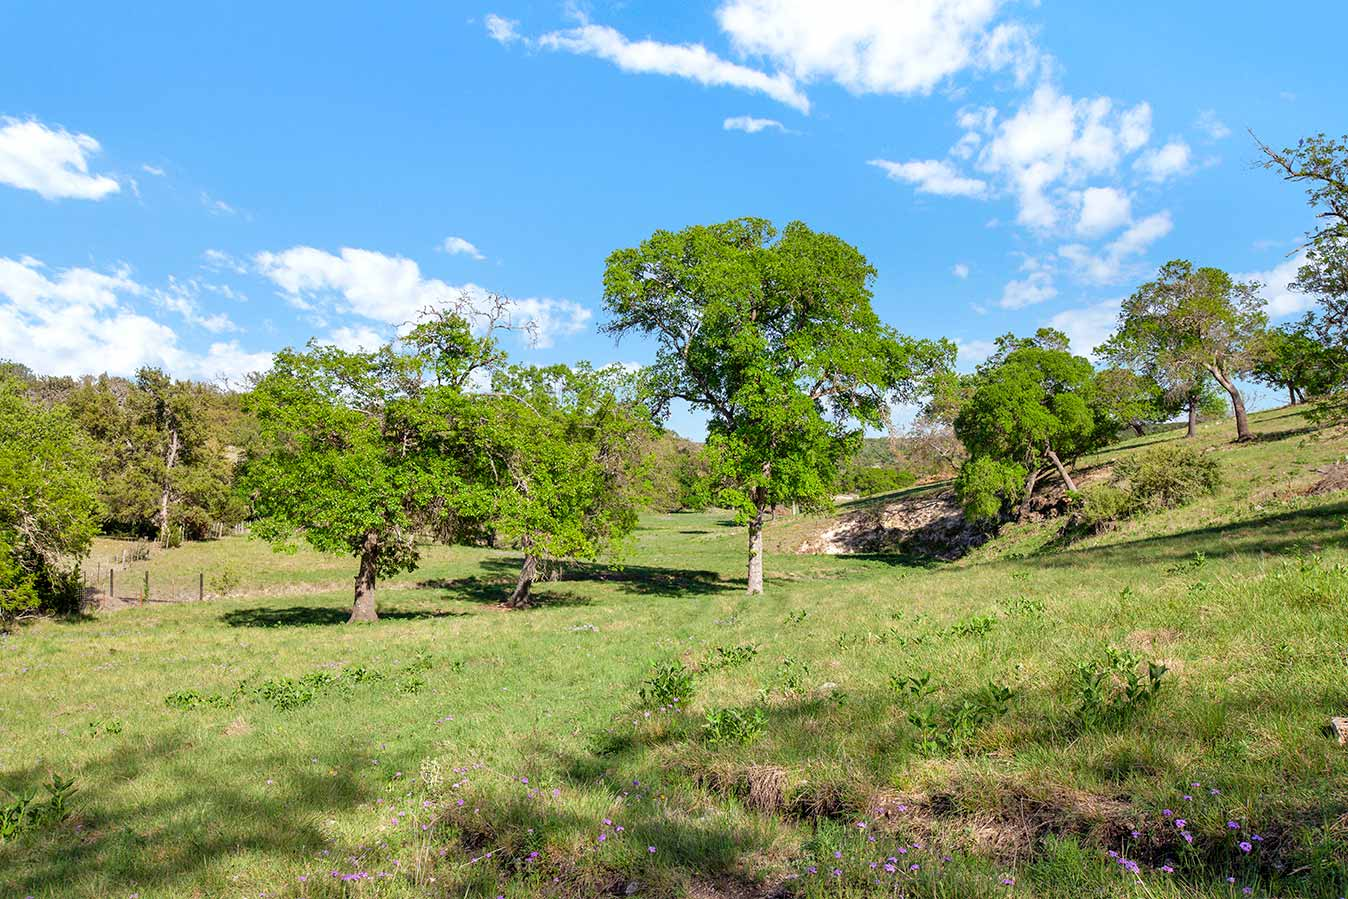 fredericksburg-realty-squaw-creek-ranch-real-estate-land-for-sale-home-house-historic-32.jpg